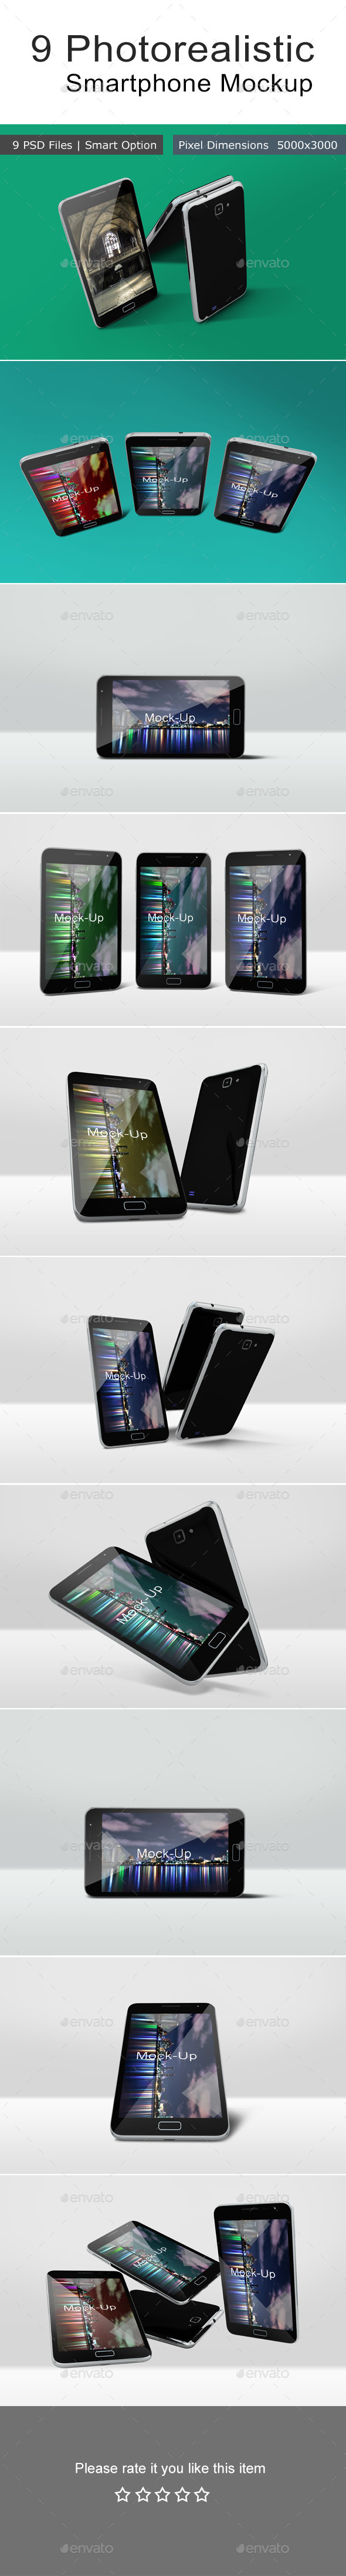 9 Photorealistic Smartphone Mockup - Mobile Displays